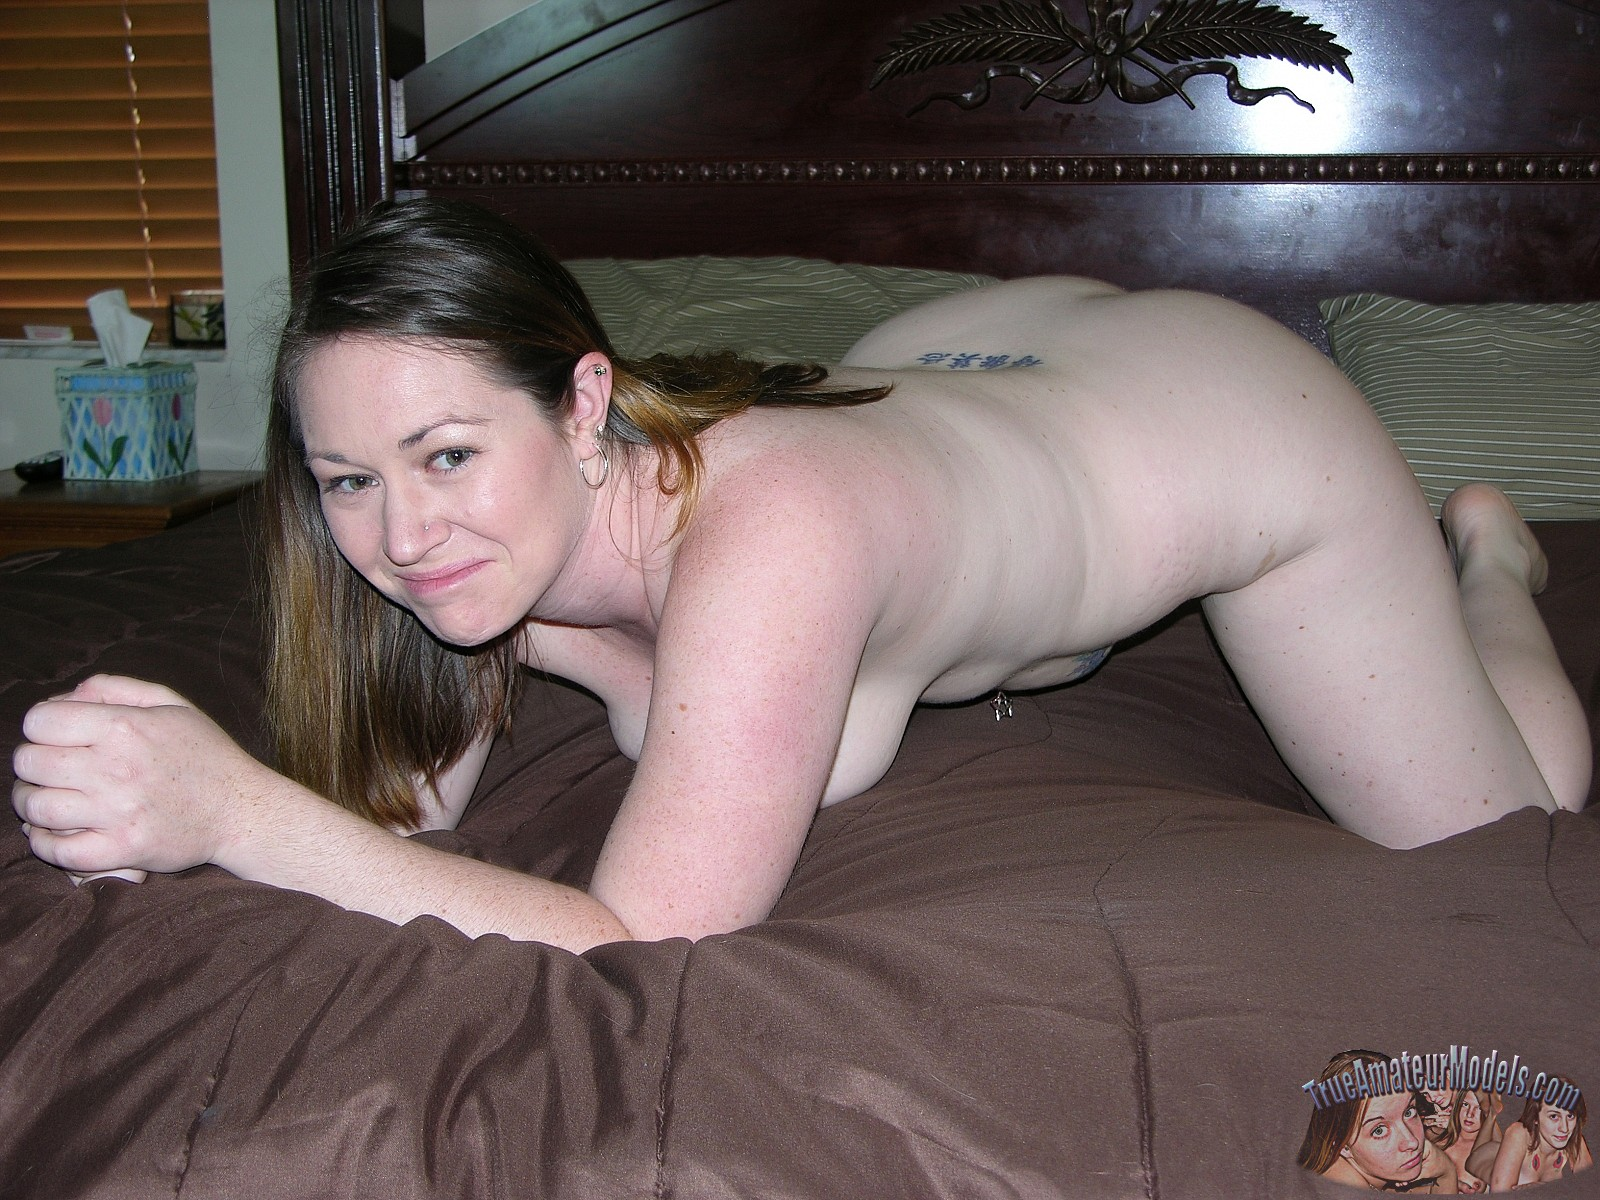 naked redneck females with shaved pussy